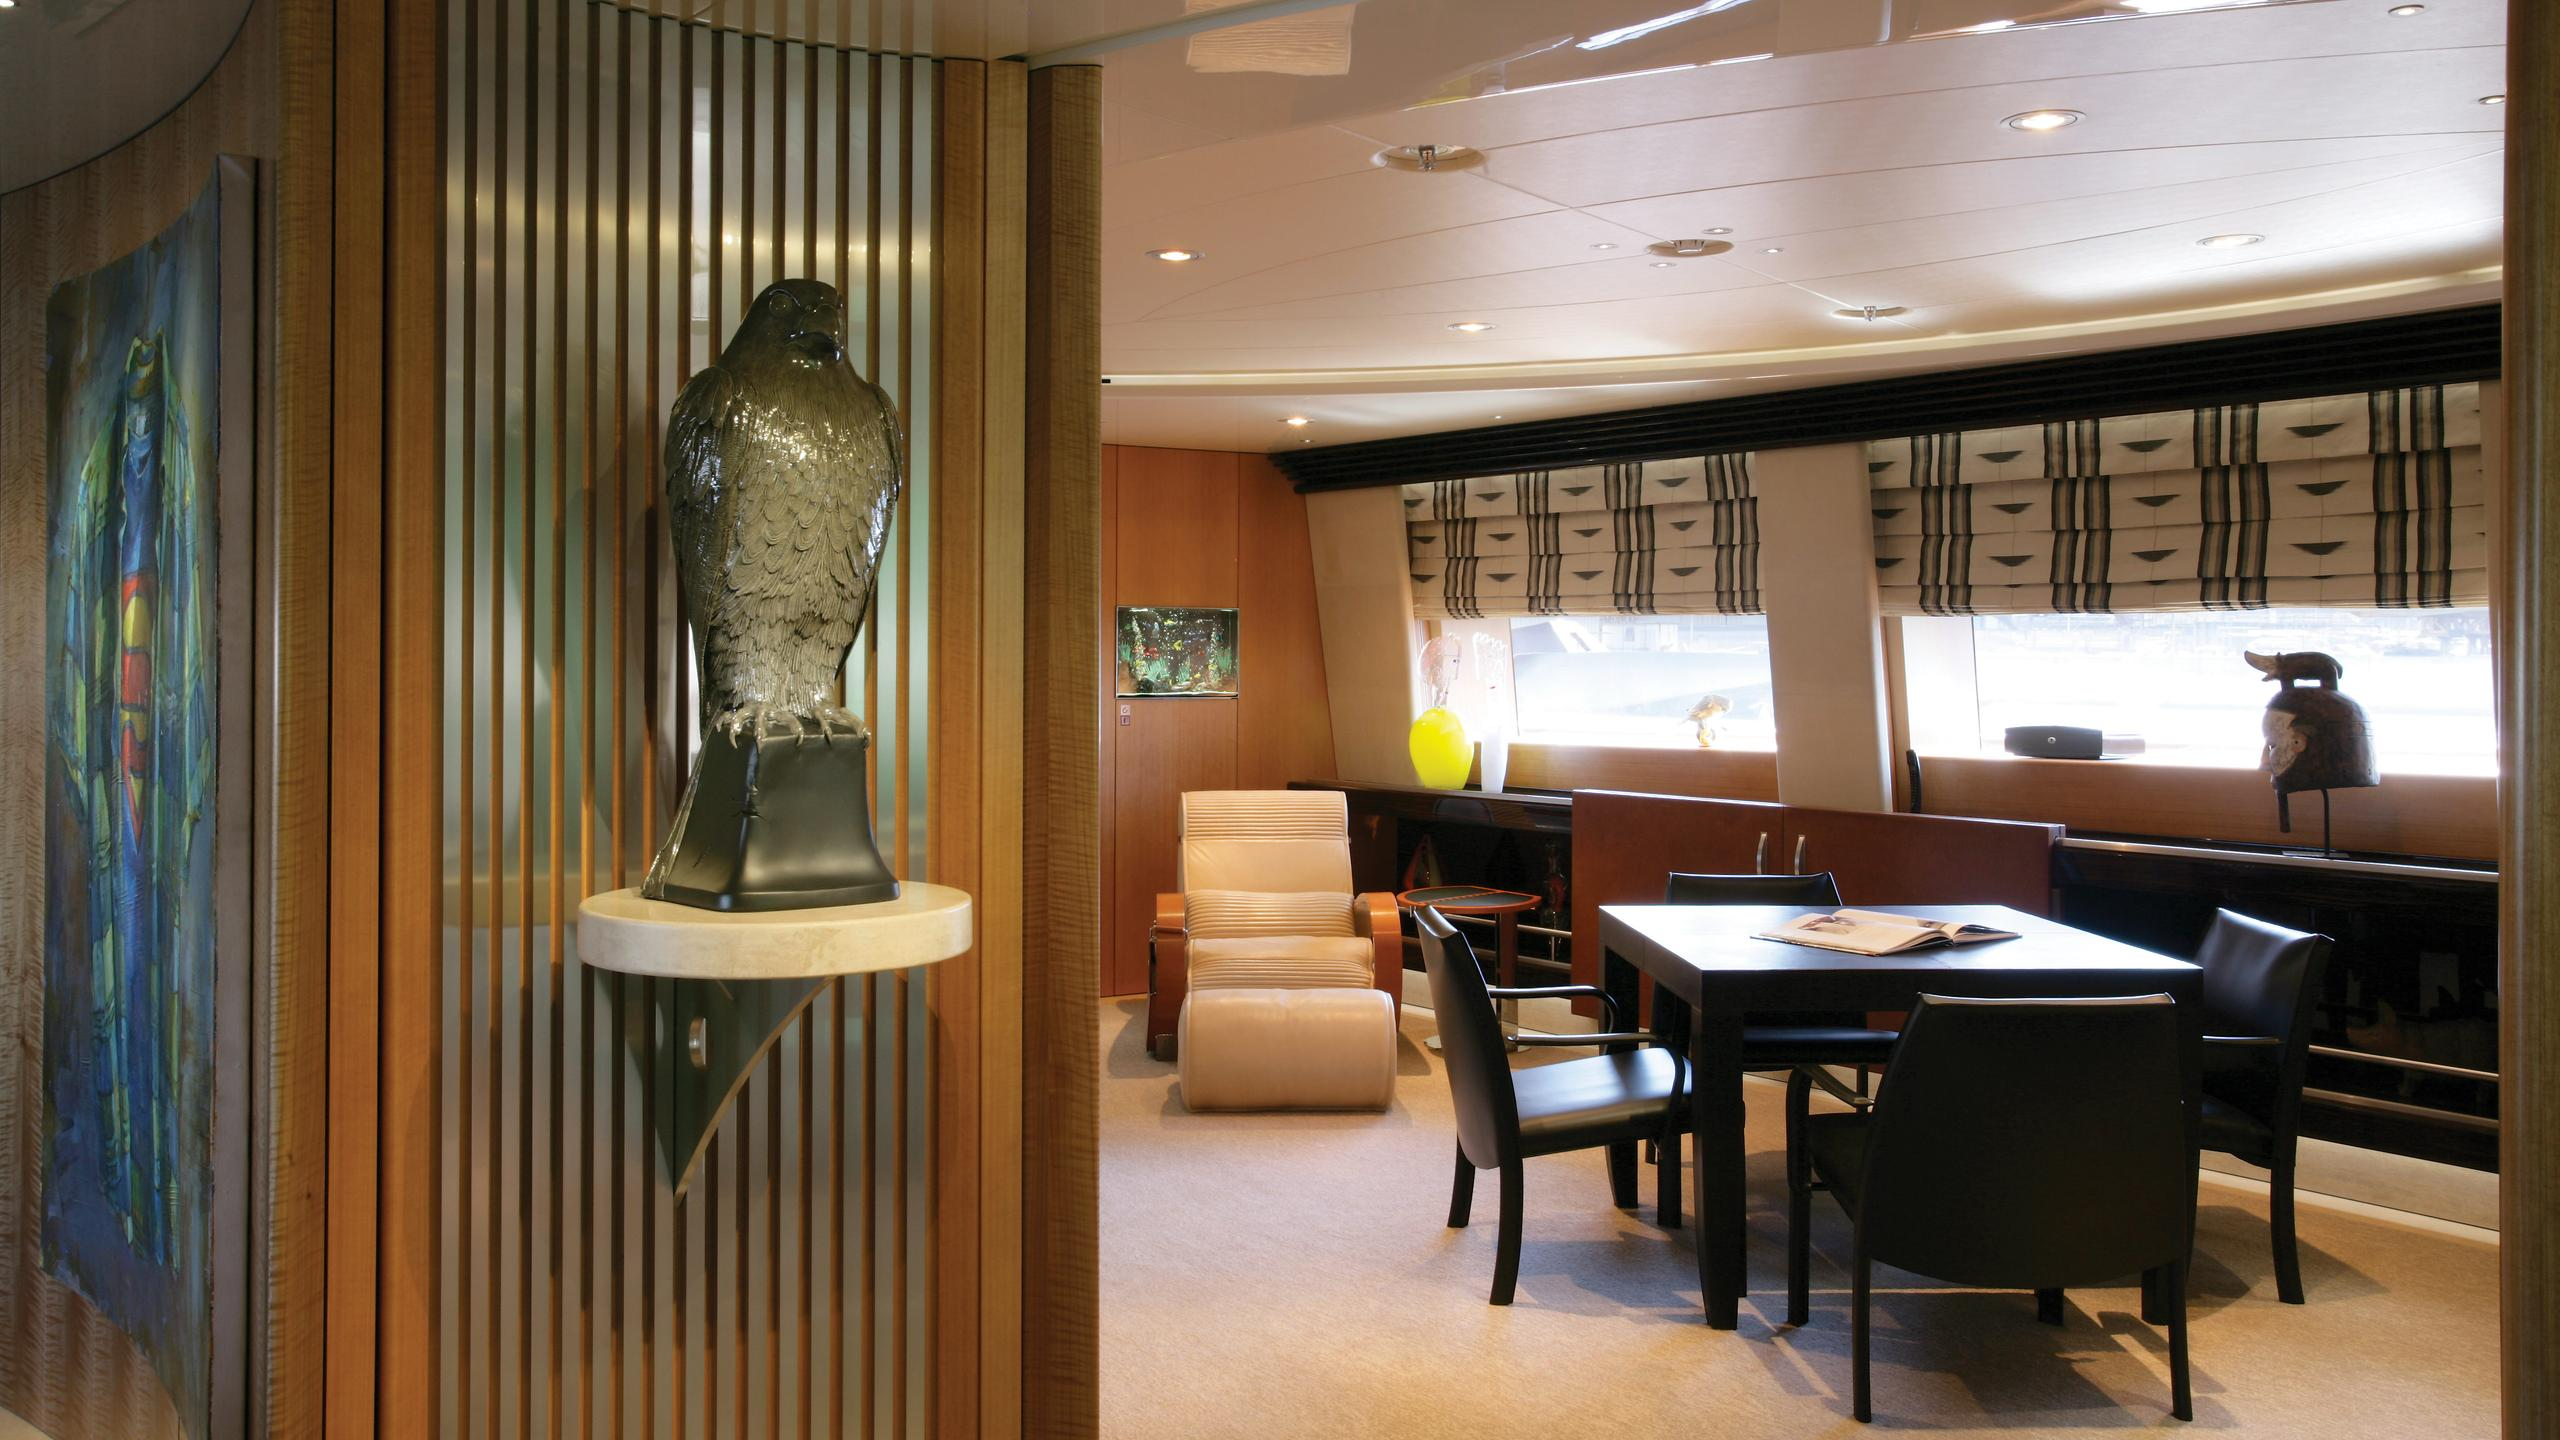 maltese-falcon-sailing-yacht-perini-navi-2006-88m-office